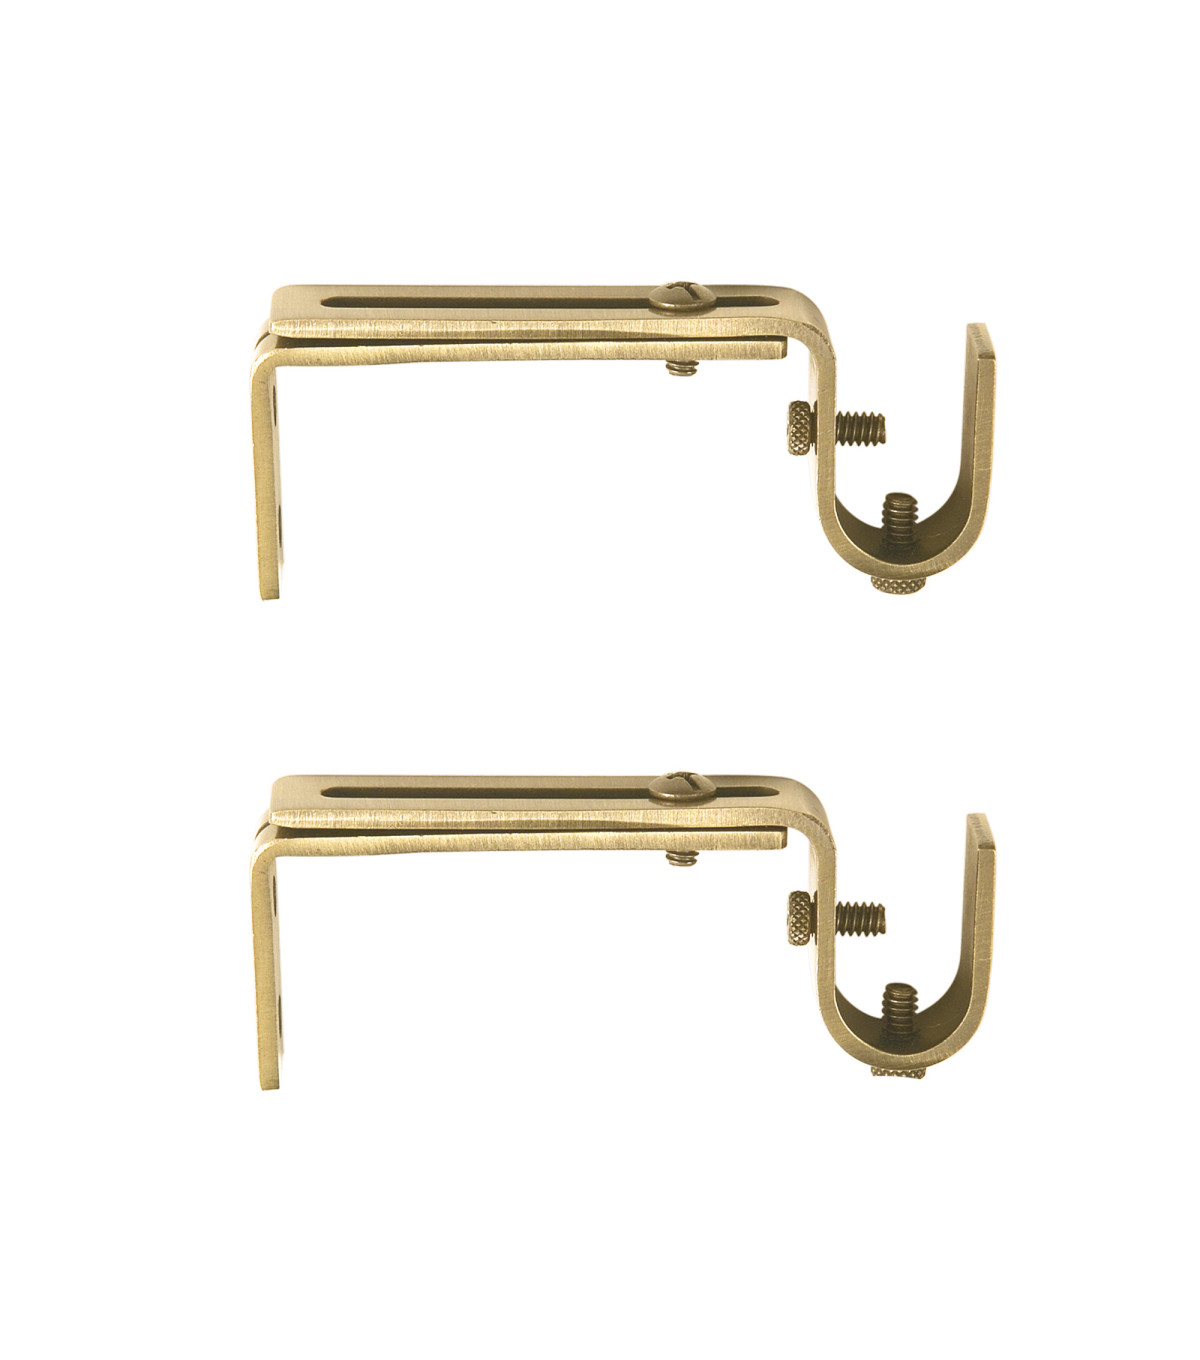 Kenney Adjule Curtain Rod Mounting Brackets Gold Joann